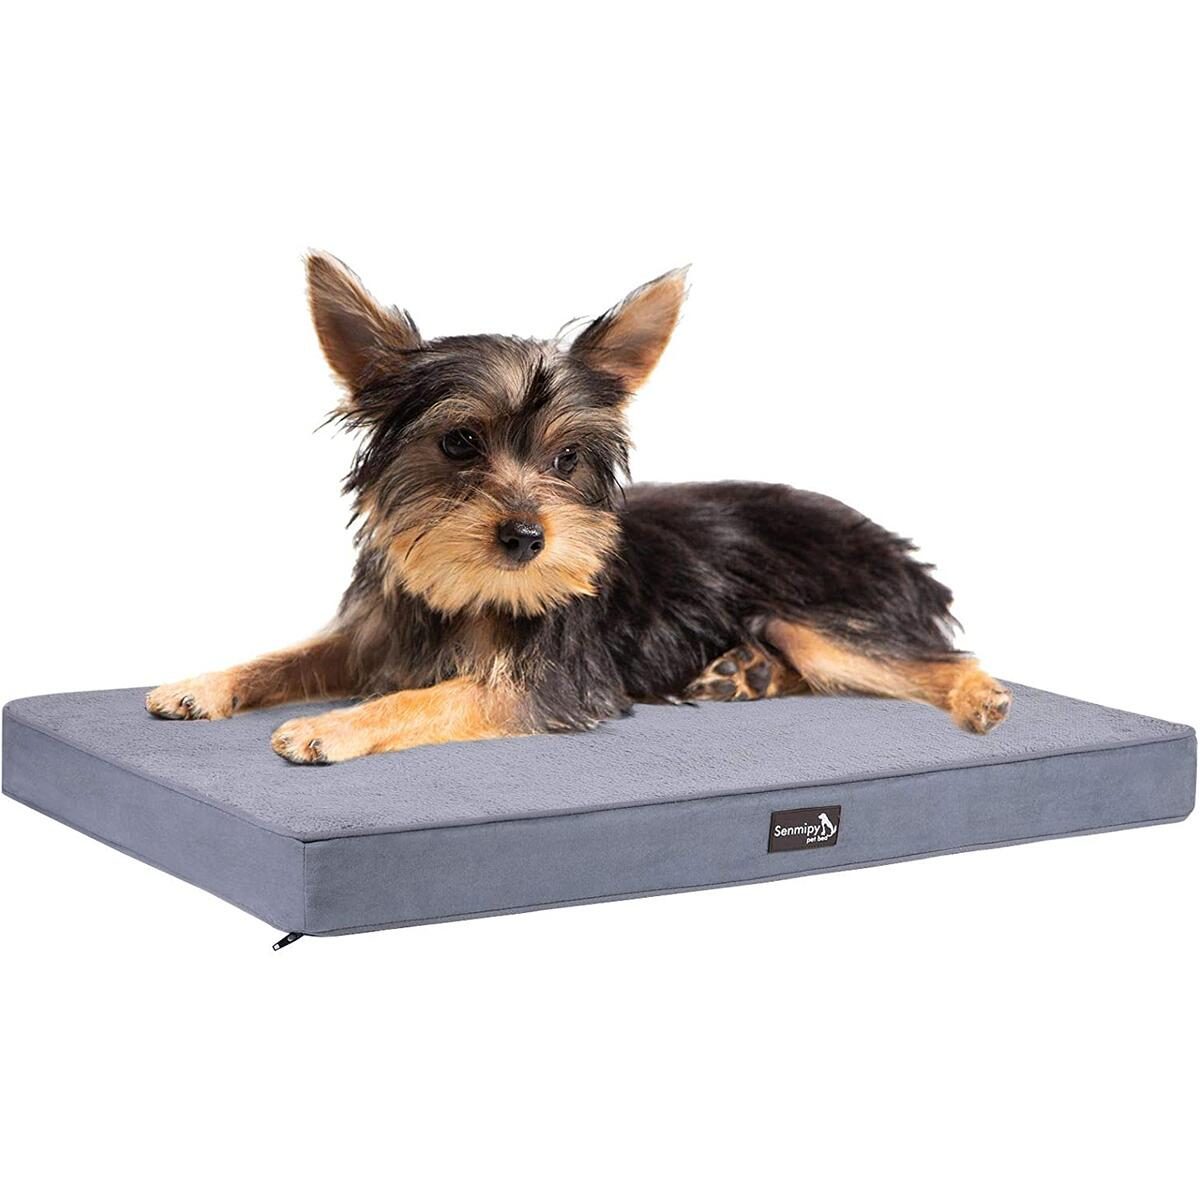 Senmipy Orthopedic Memory Foam Dog Bed for Small, Medium, Large Dogs & Cats, Plush Pet Bed Mattress with Removable Washable Cover